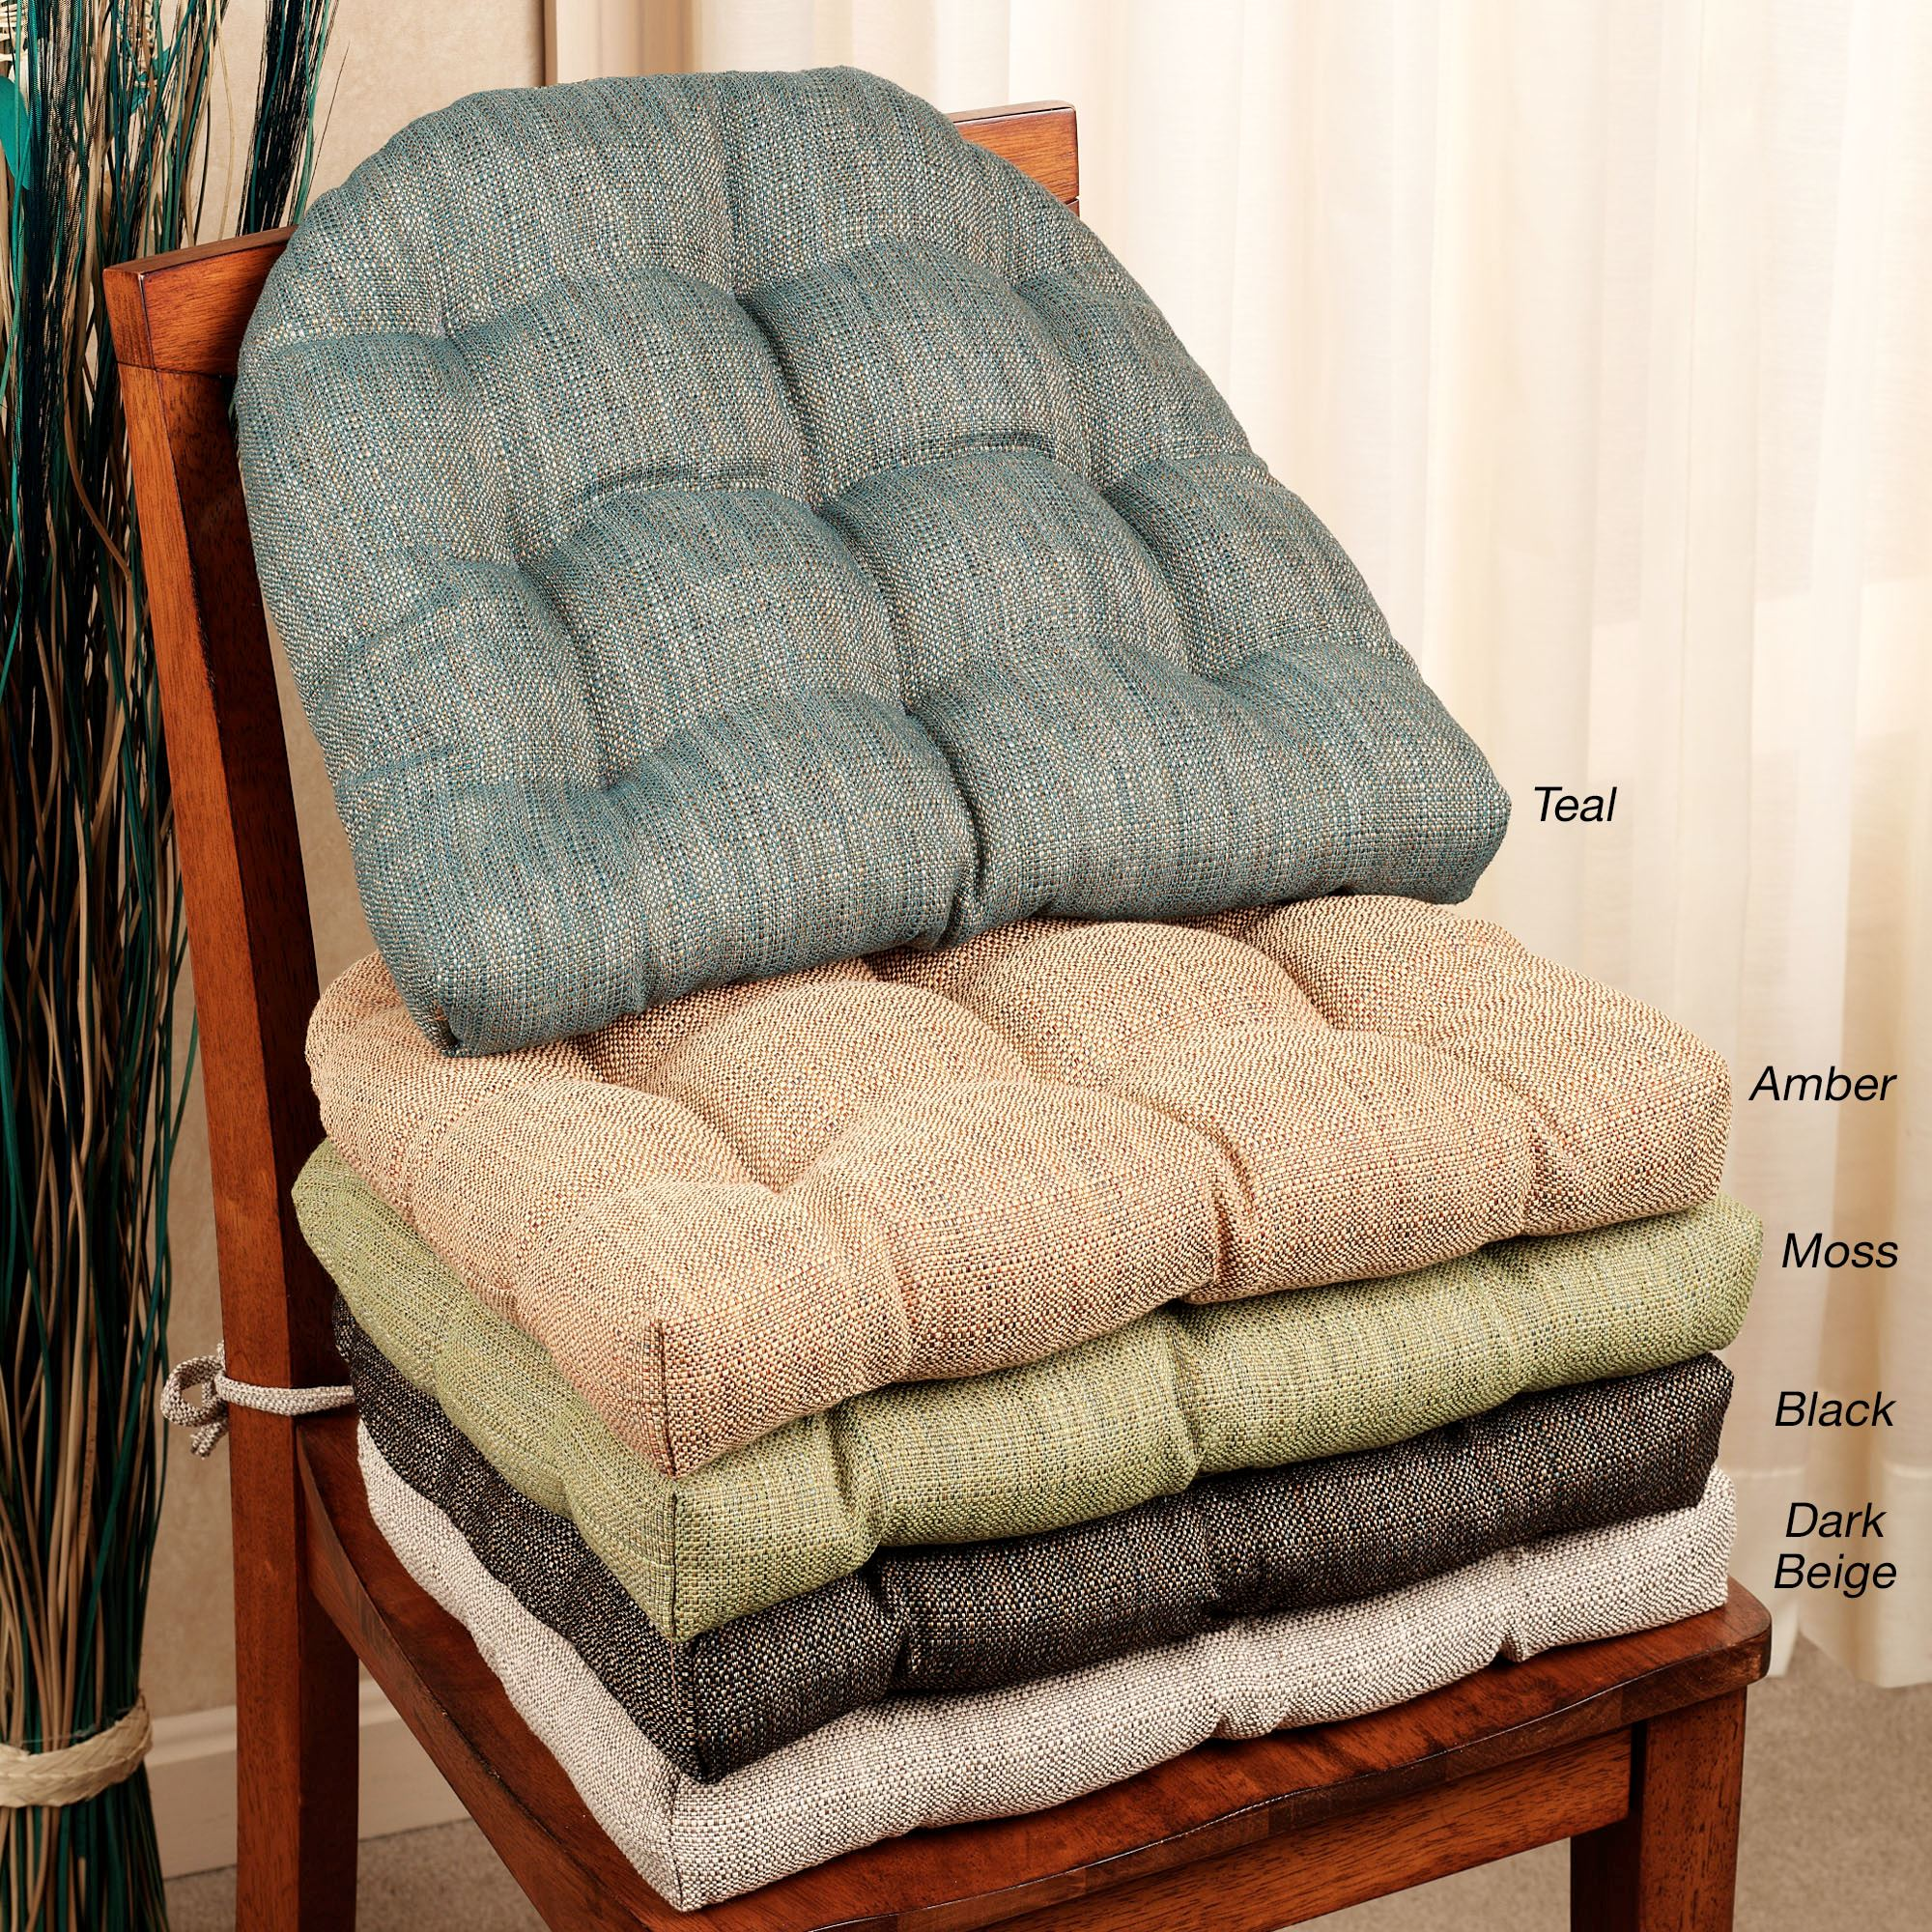 How To Make Dining Room Chair Cushions: Handsome Reversible Chair Cushion Set